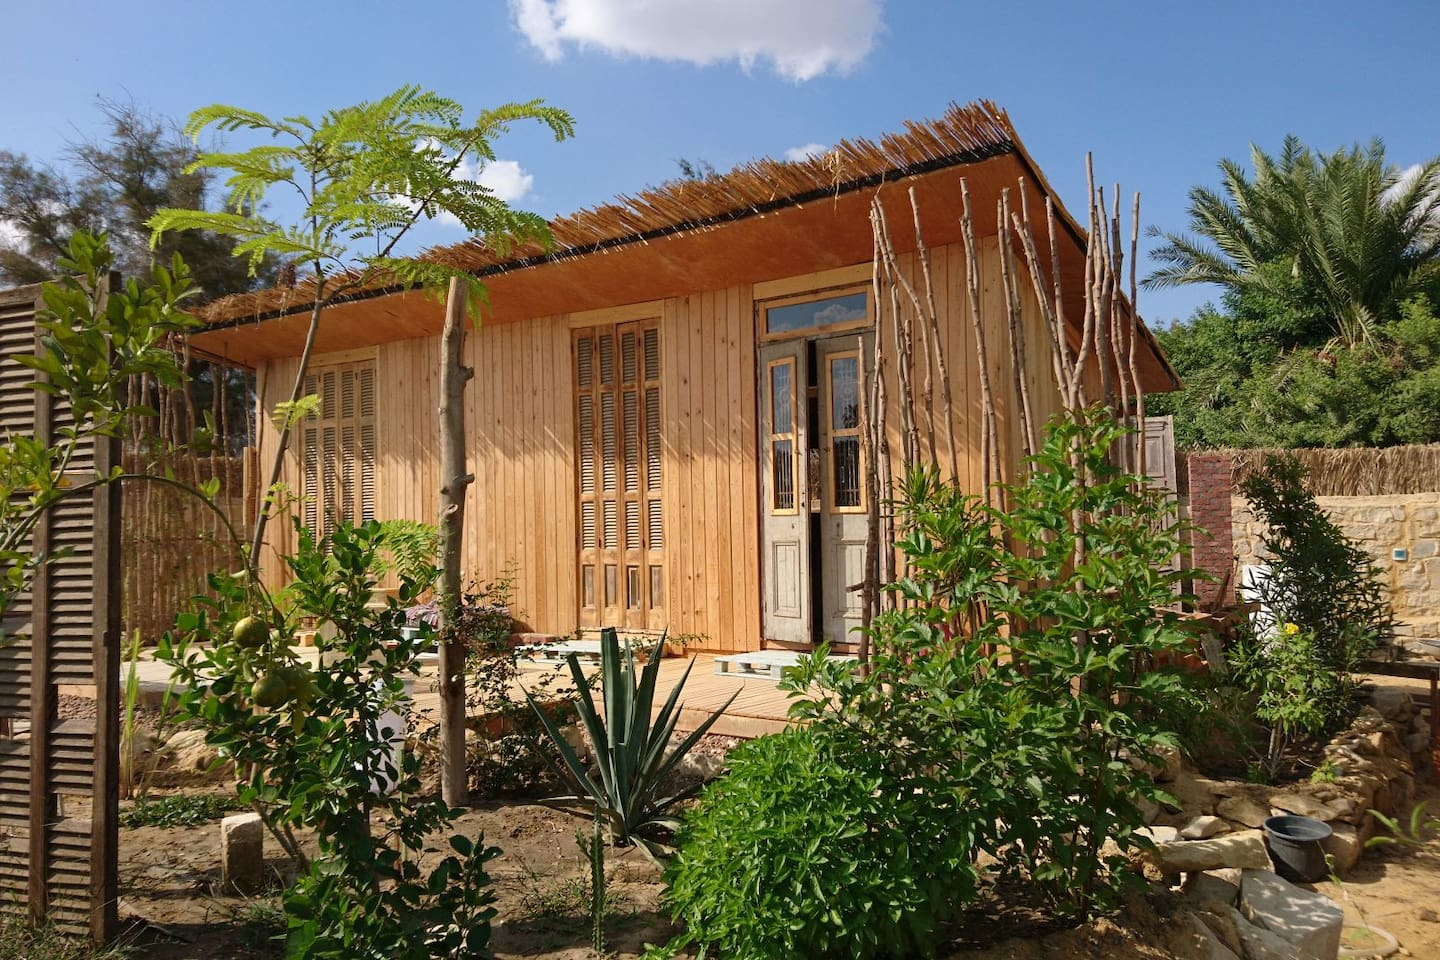 Barefoot in Tunis - The Tiny House